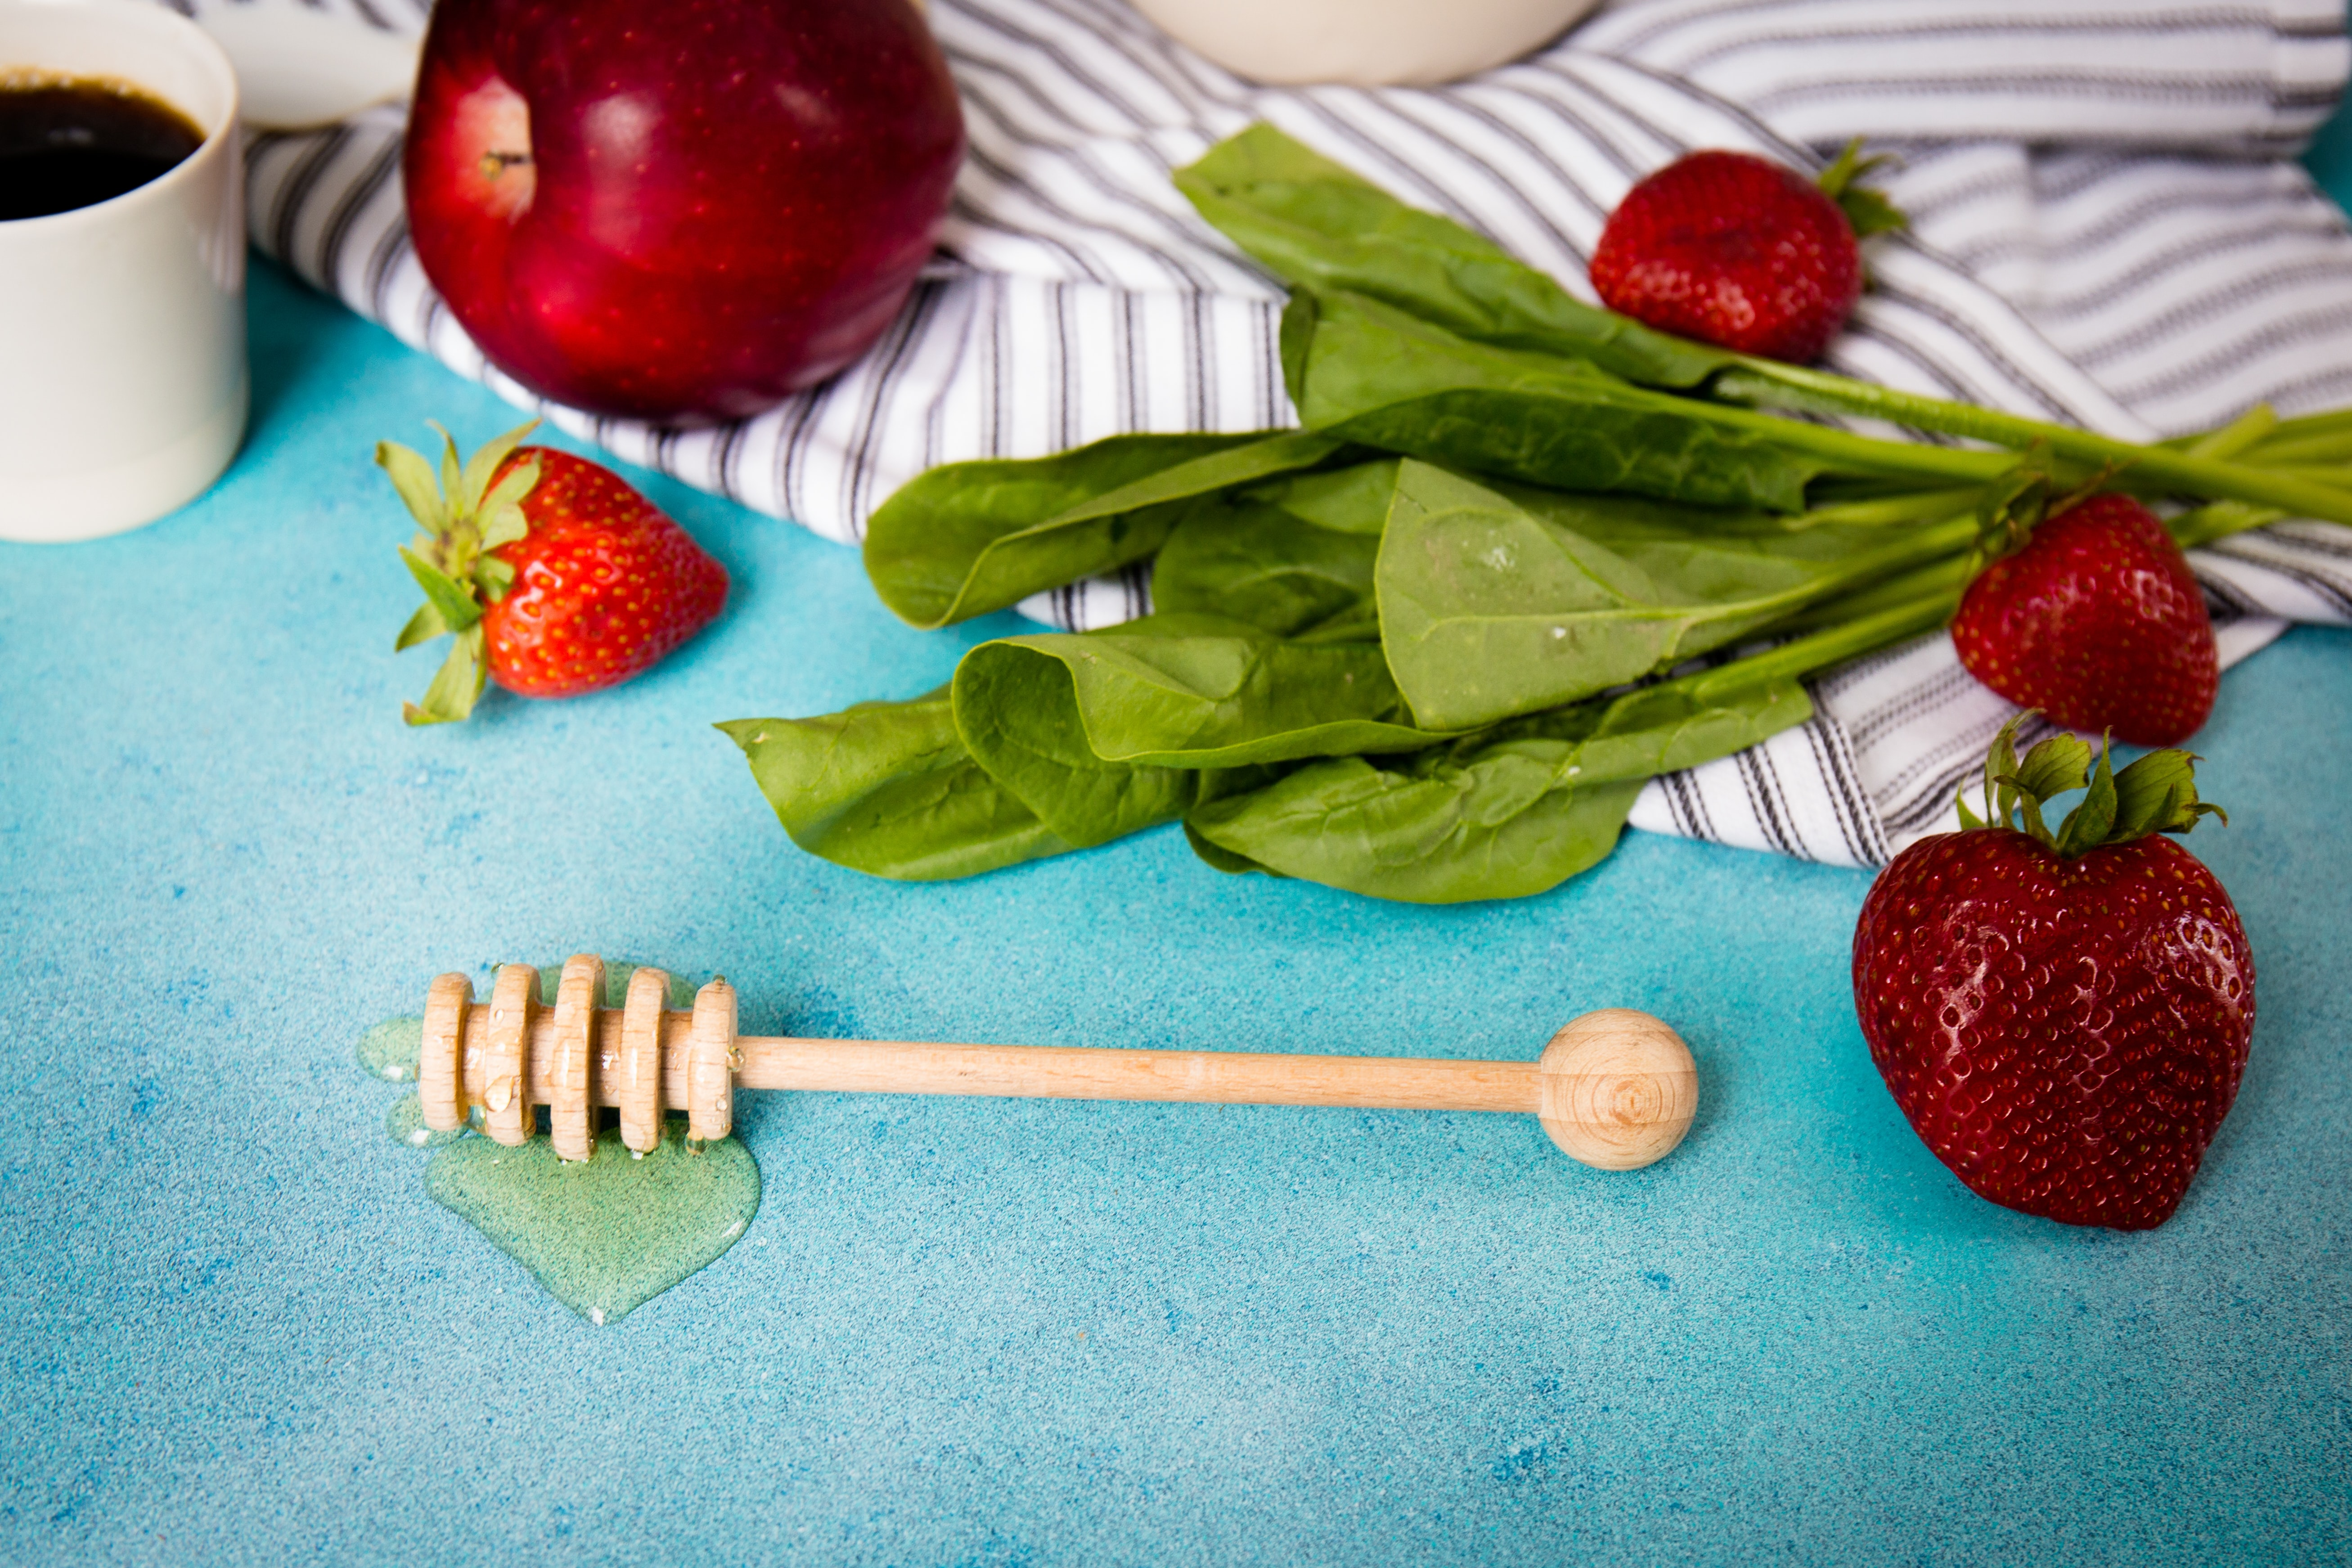 Wooden honey dipper stirring rod on a blue surface next to leaves, apples, strawberries and a mug of coffee